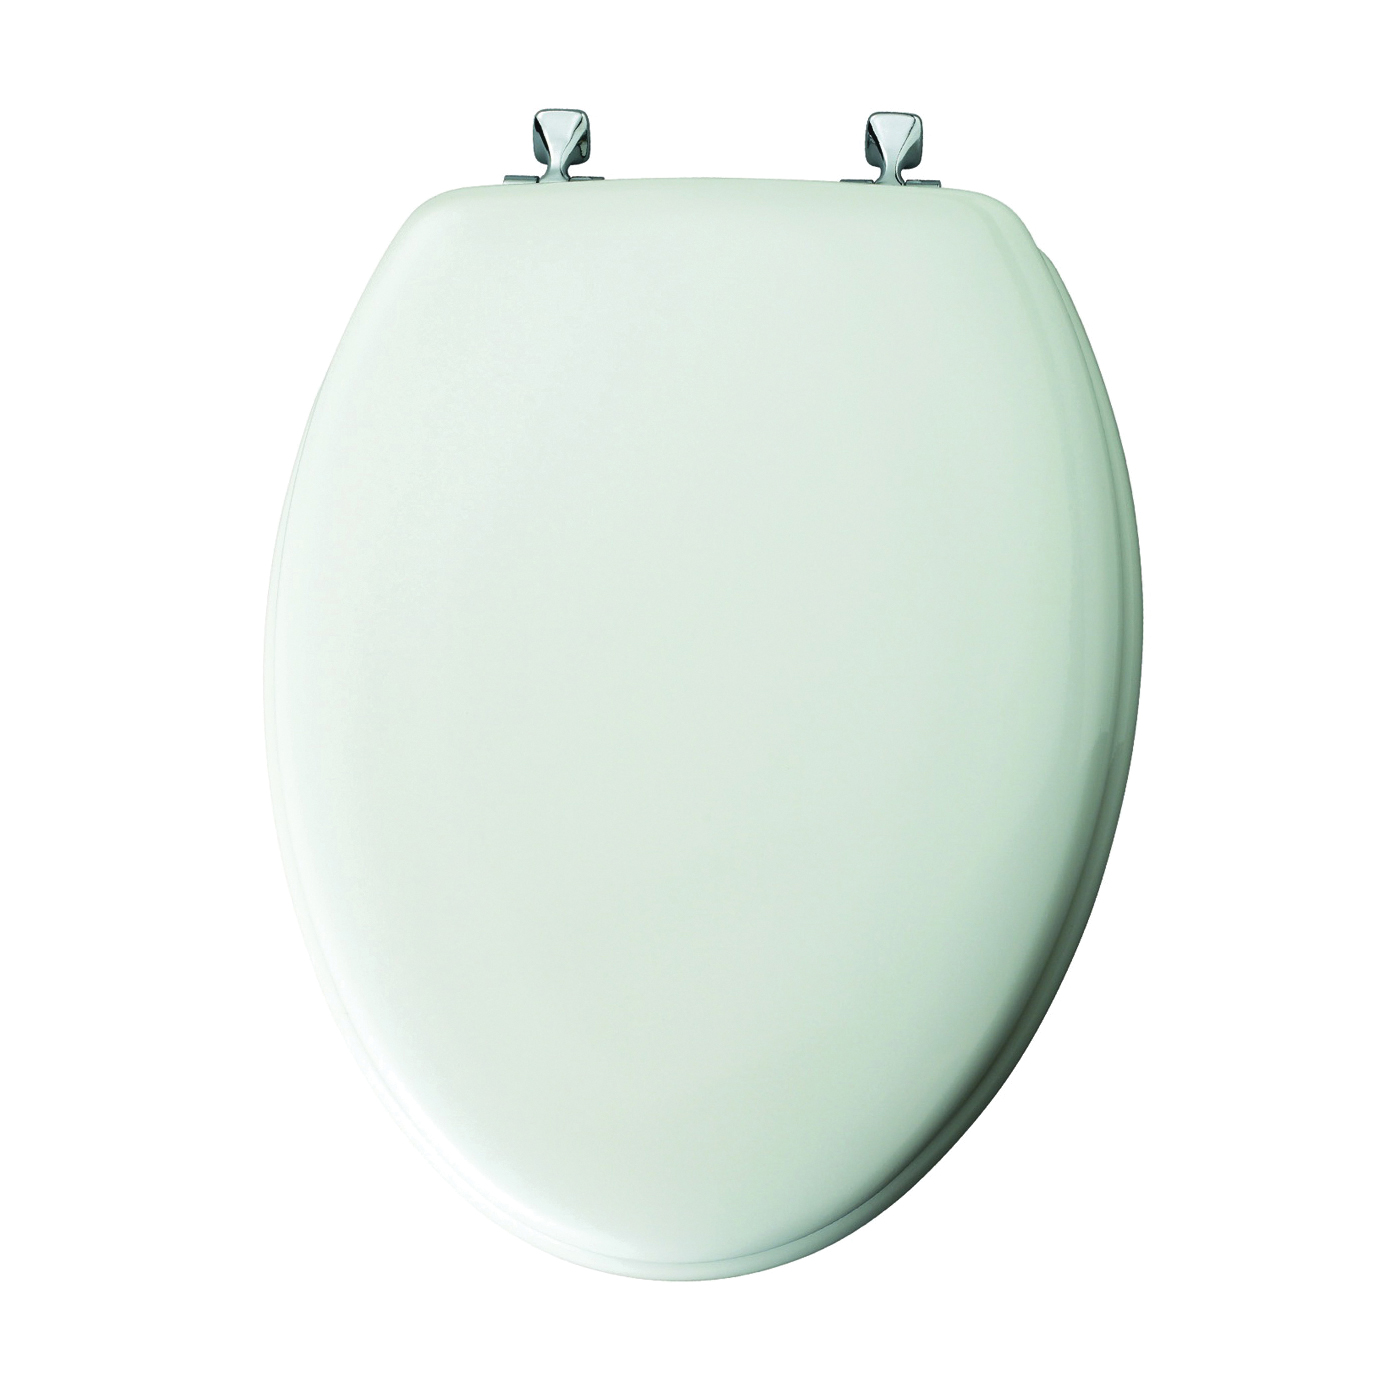 Picture of Mayfair 144CP-000 Toilet Seat, Elongated, Molded Wood, White